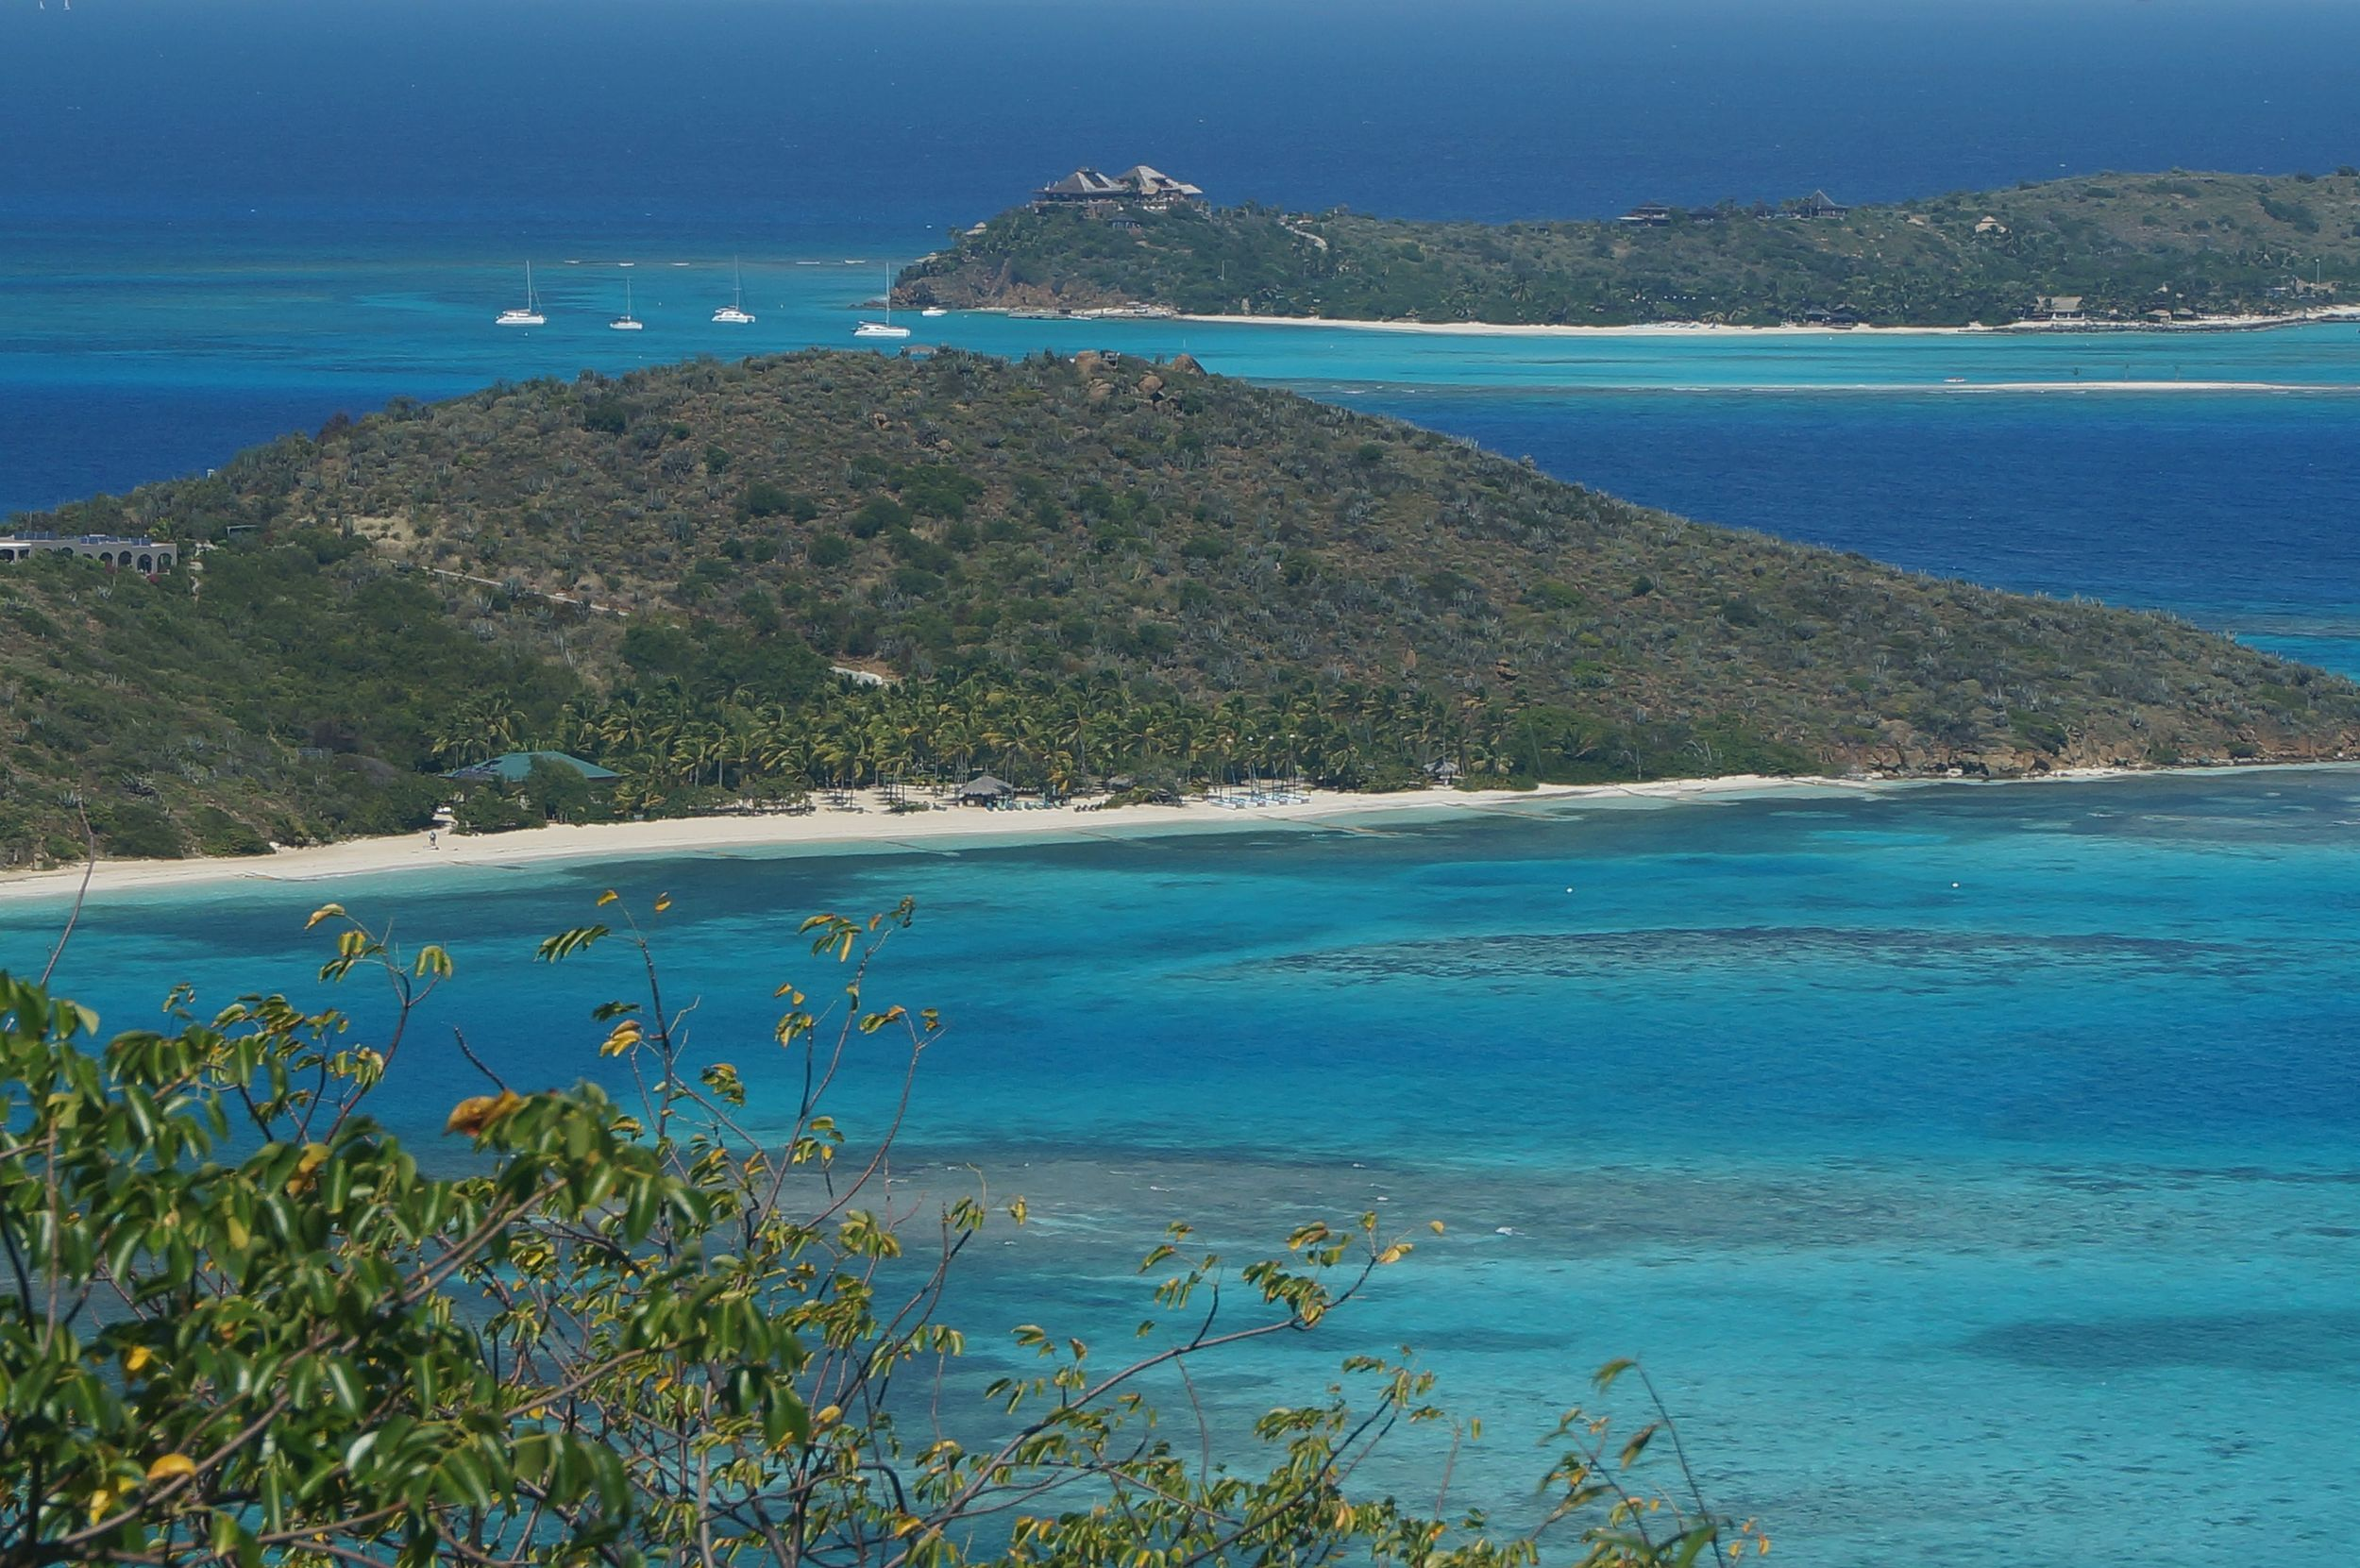 Eustatia Island and Necker Island in the background